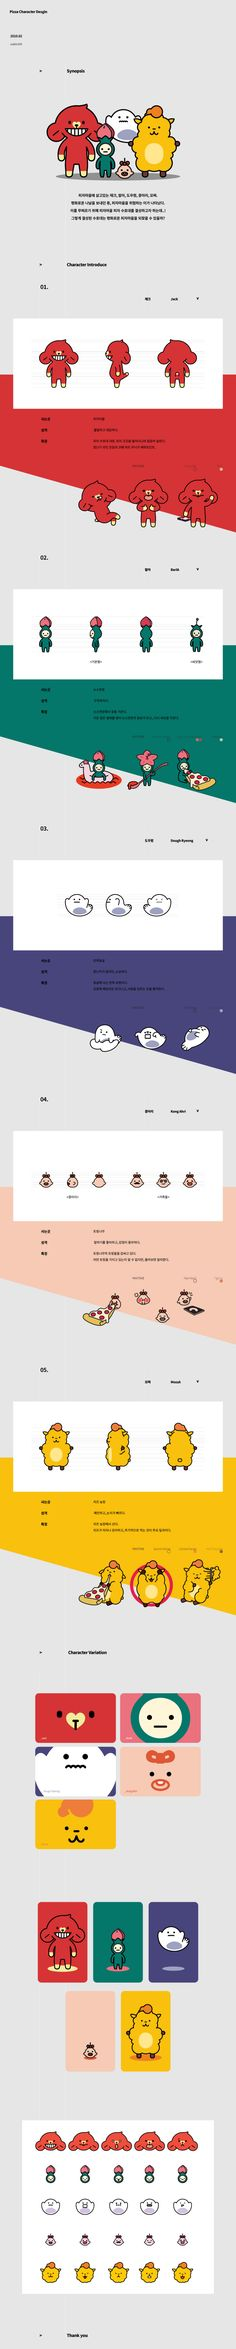 Brand Character, Character Modeling, Character Design, Cute Illustration, Character Illustration, Cartoon Expression, Mascot Design, Cute Animal Drawings, Cute Characters